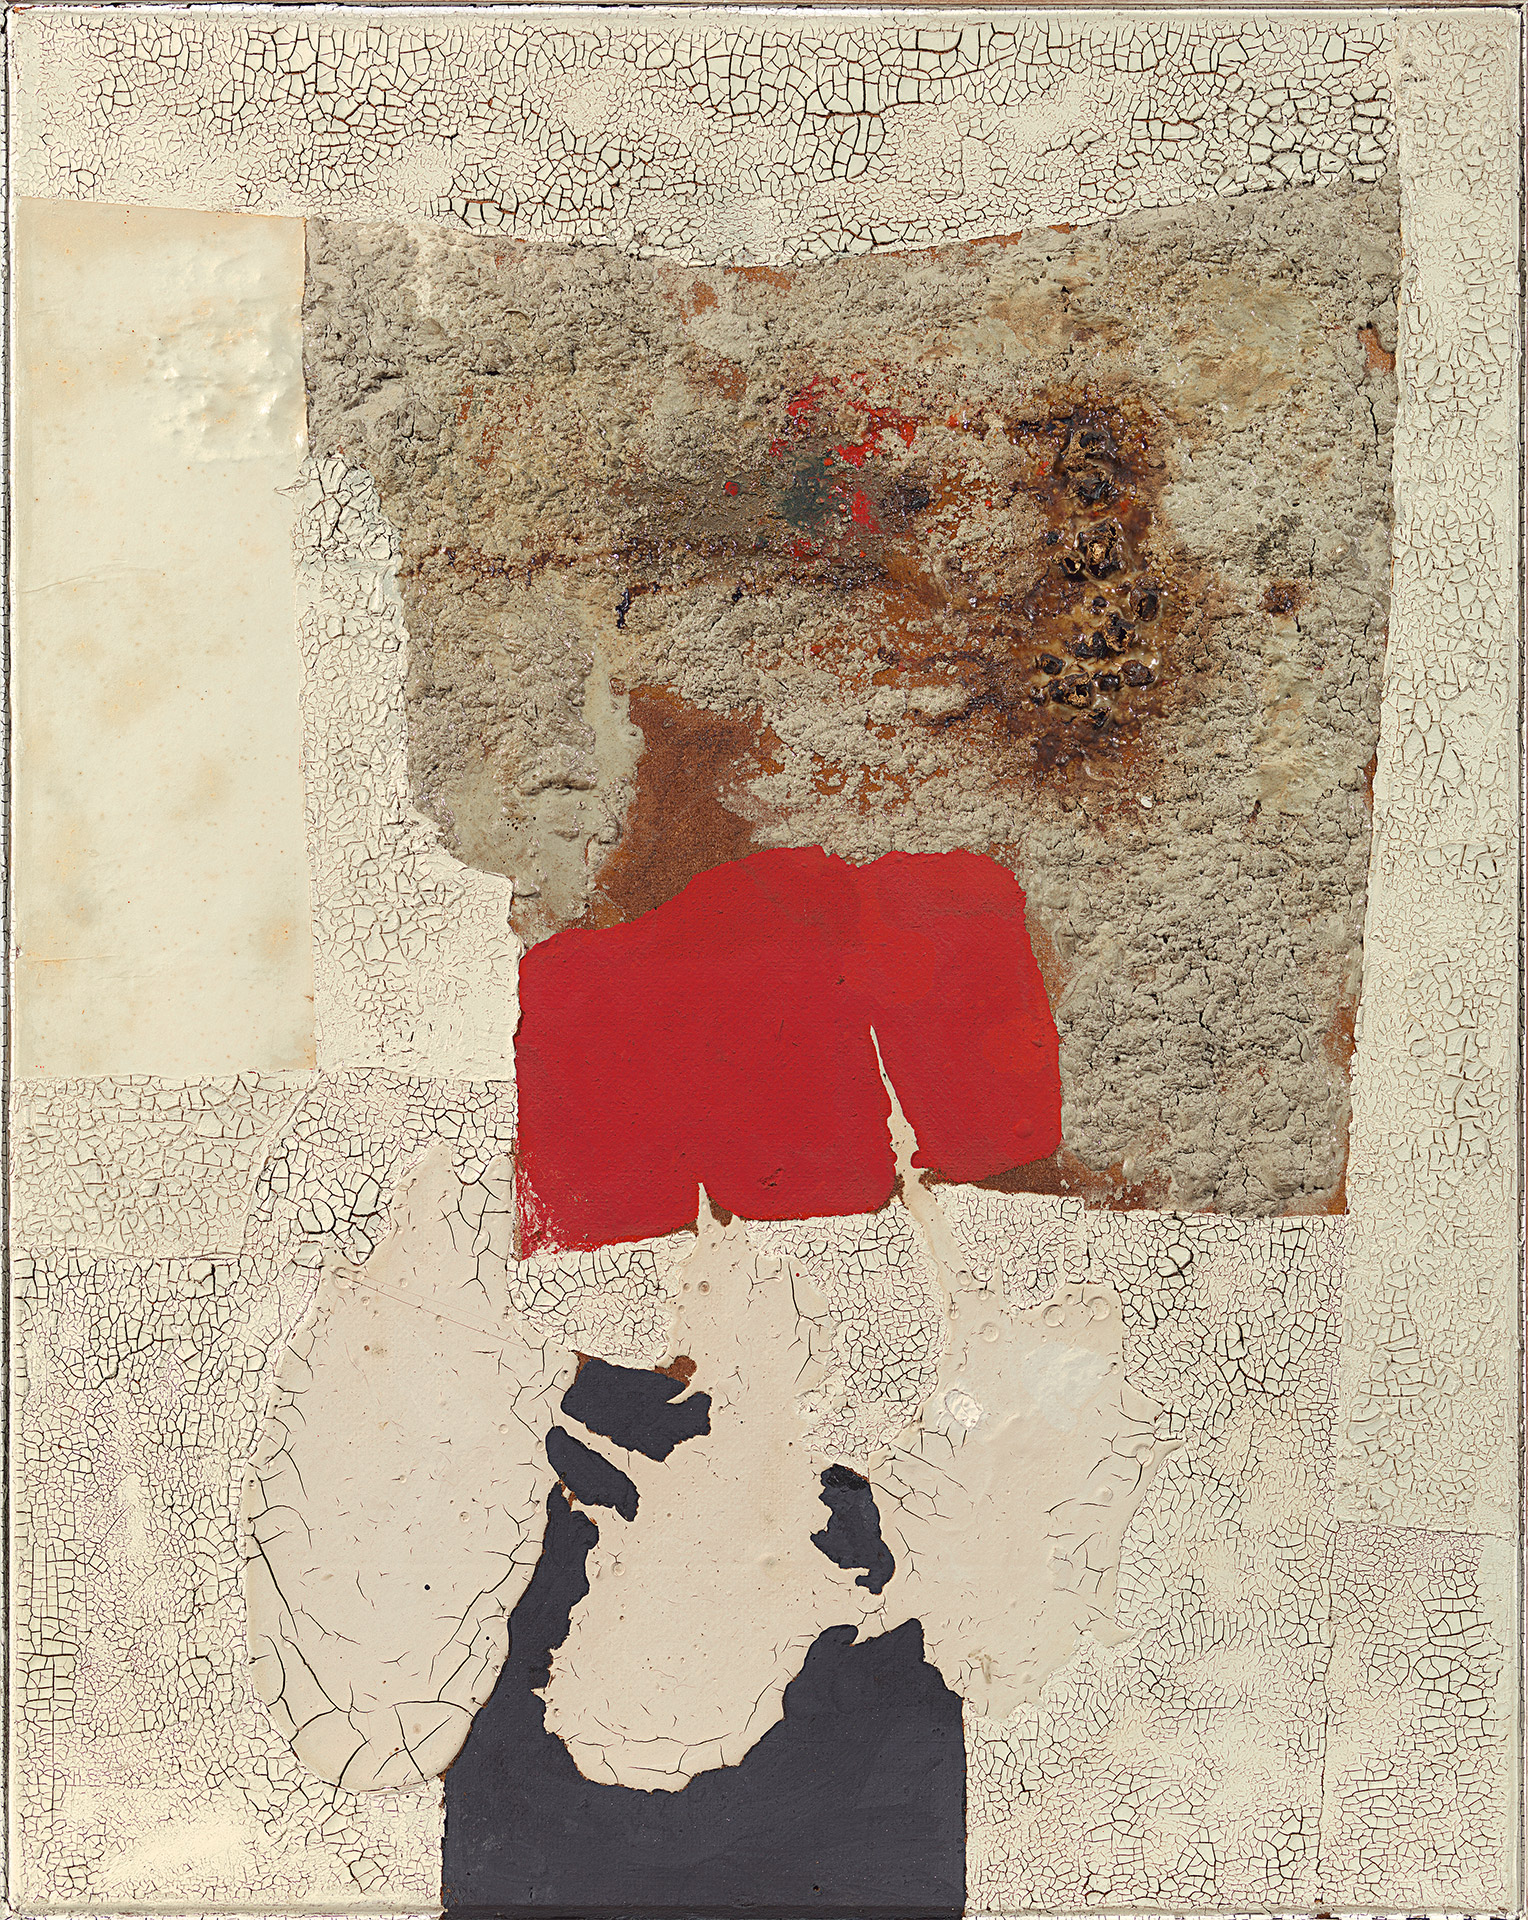 Alberto Burri, Muffa (Mold), 1952, oil, PVA, pumice, sand, and paper on Celotex,